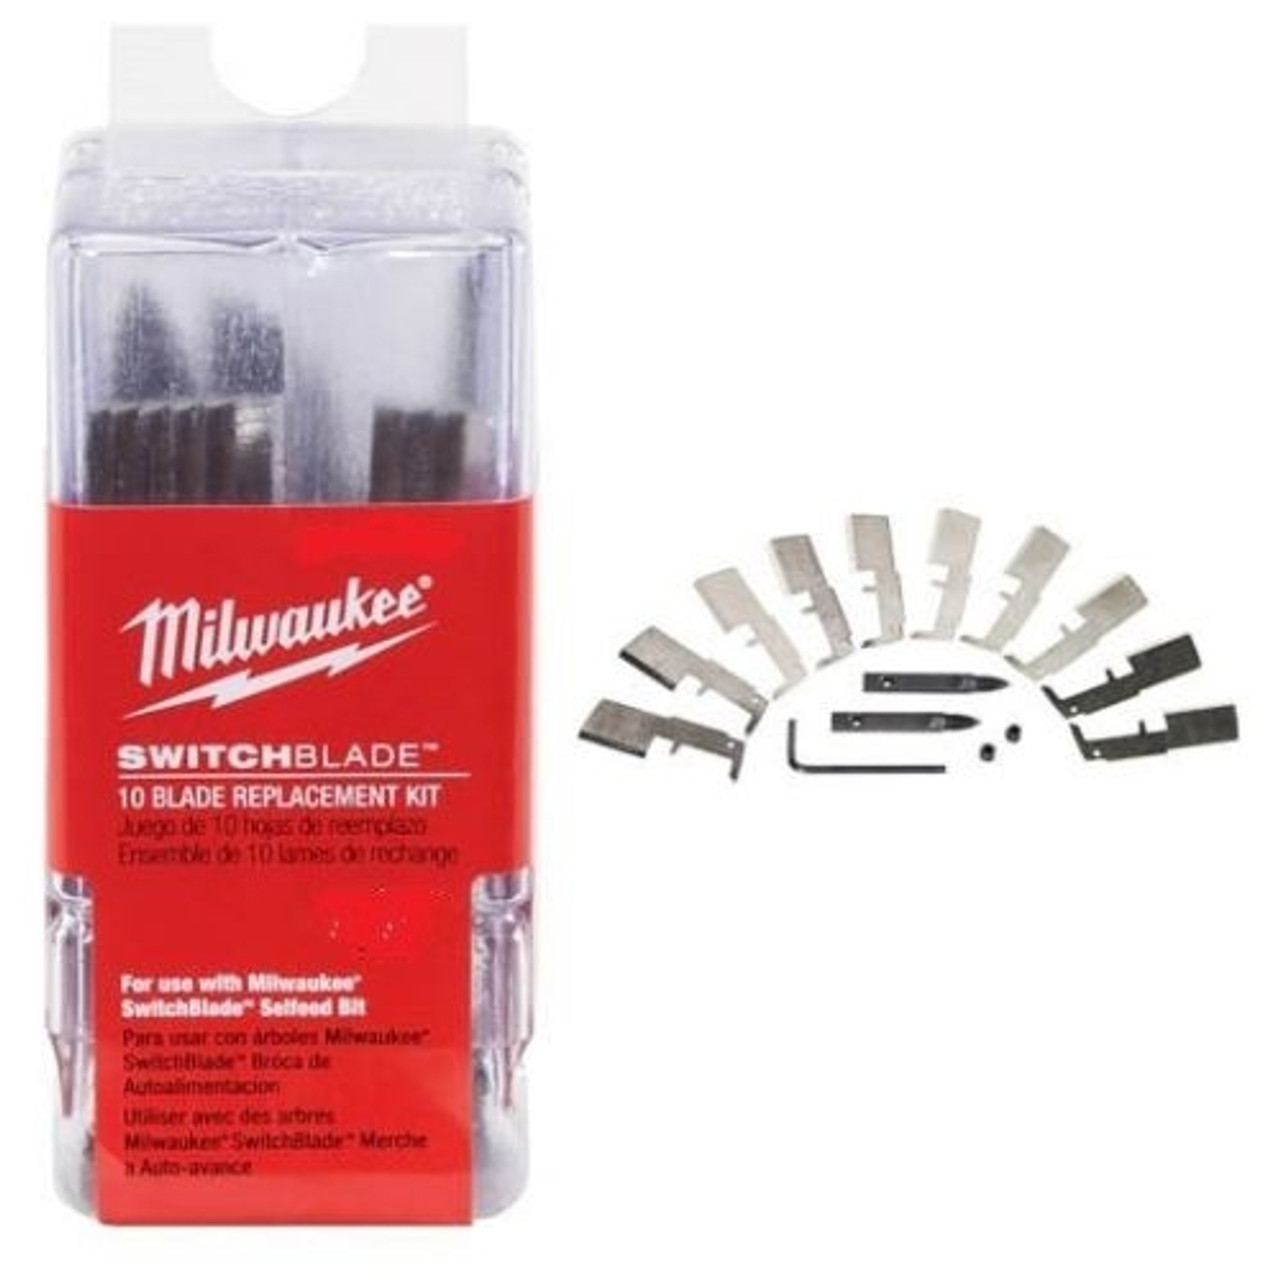 Milwaukee 48-25-5320 1-3/8 in. SwitchBlade 10 Blade Replacement Kit